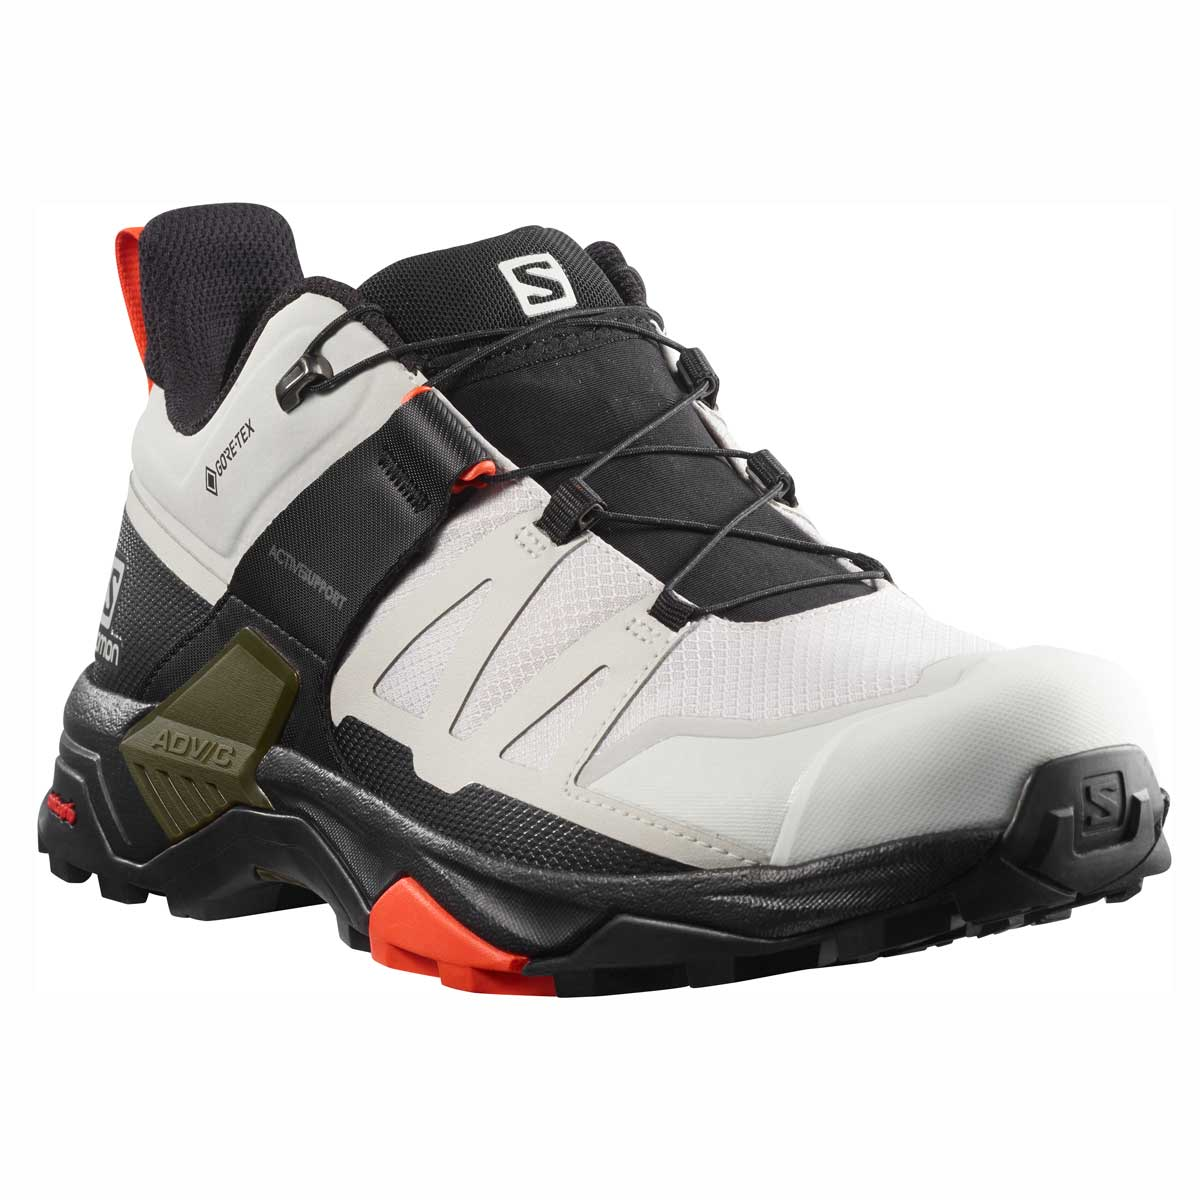 Salomon men's X Ultra 4 GTX hiking shoe in Lunar Rock and Black and Cherry Tomato